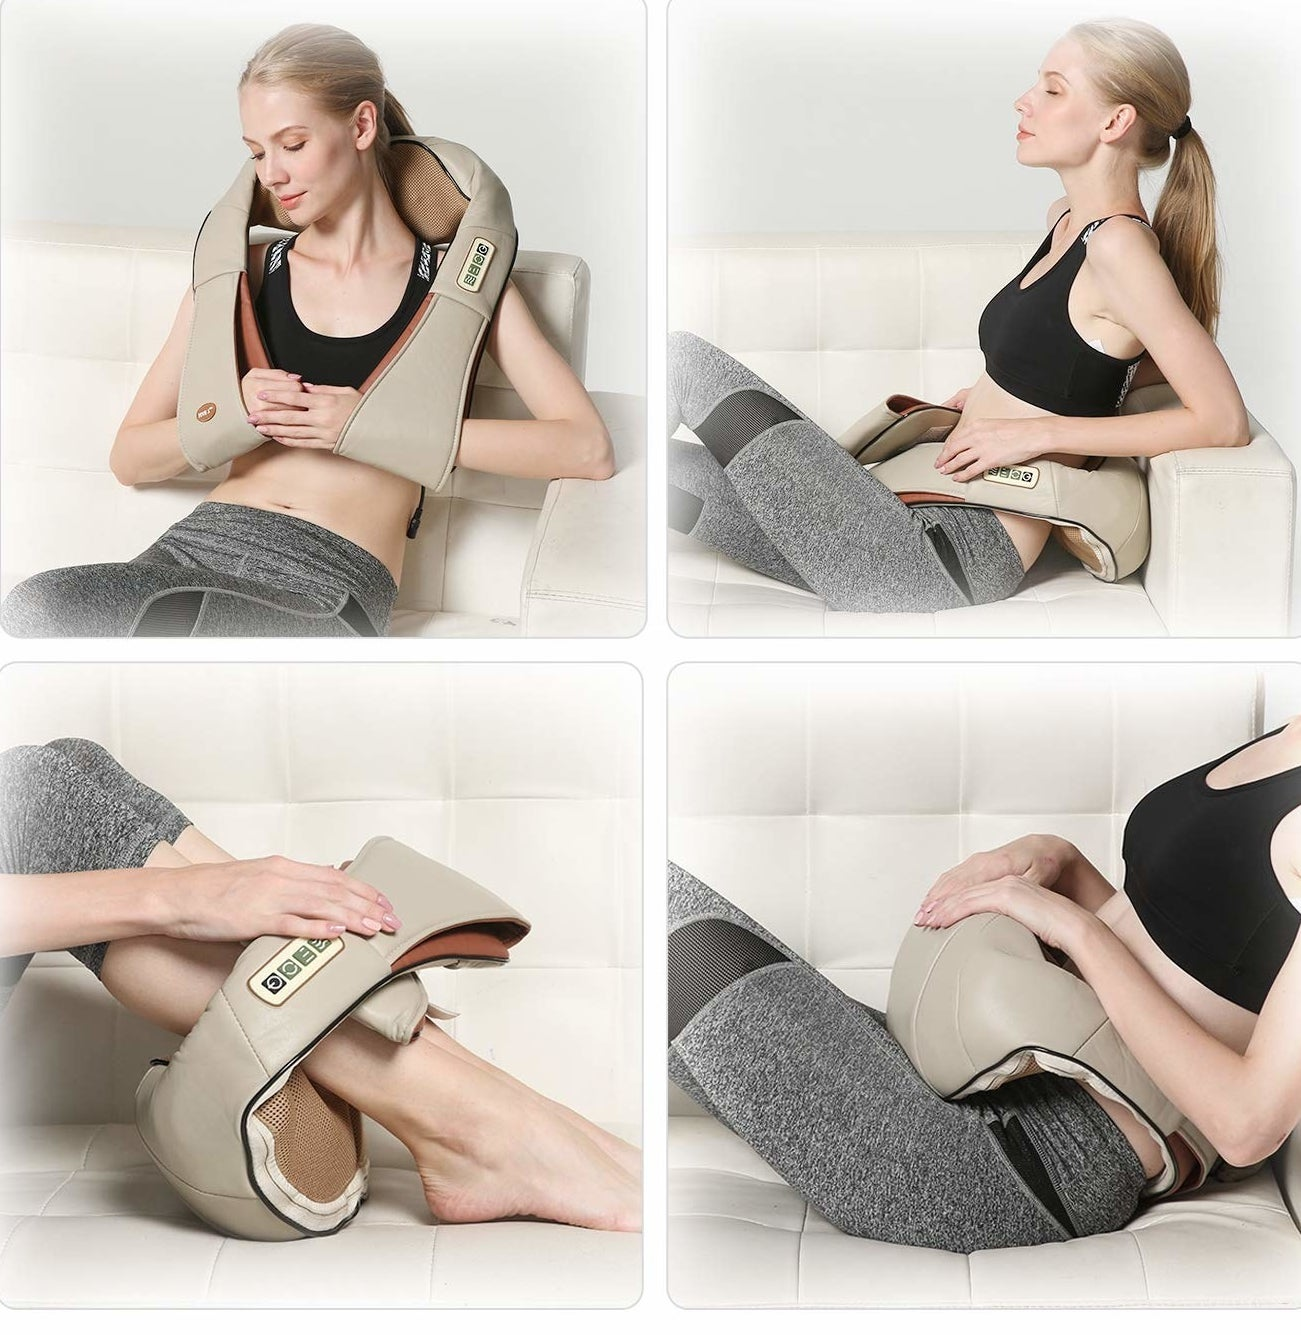 A model using the massager with arms and loops on the end on their shoulder, lower back, calves, and stomach.